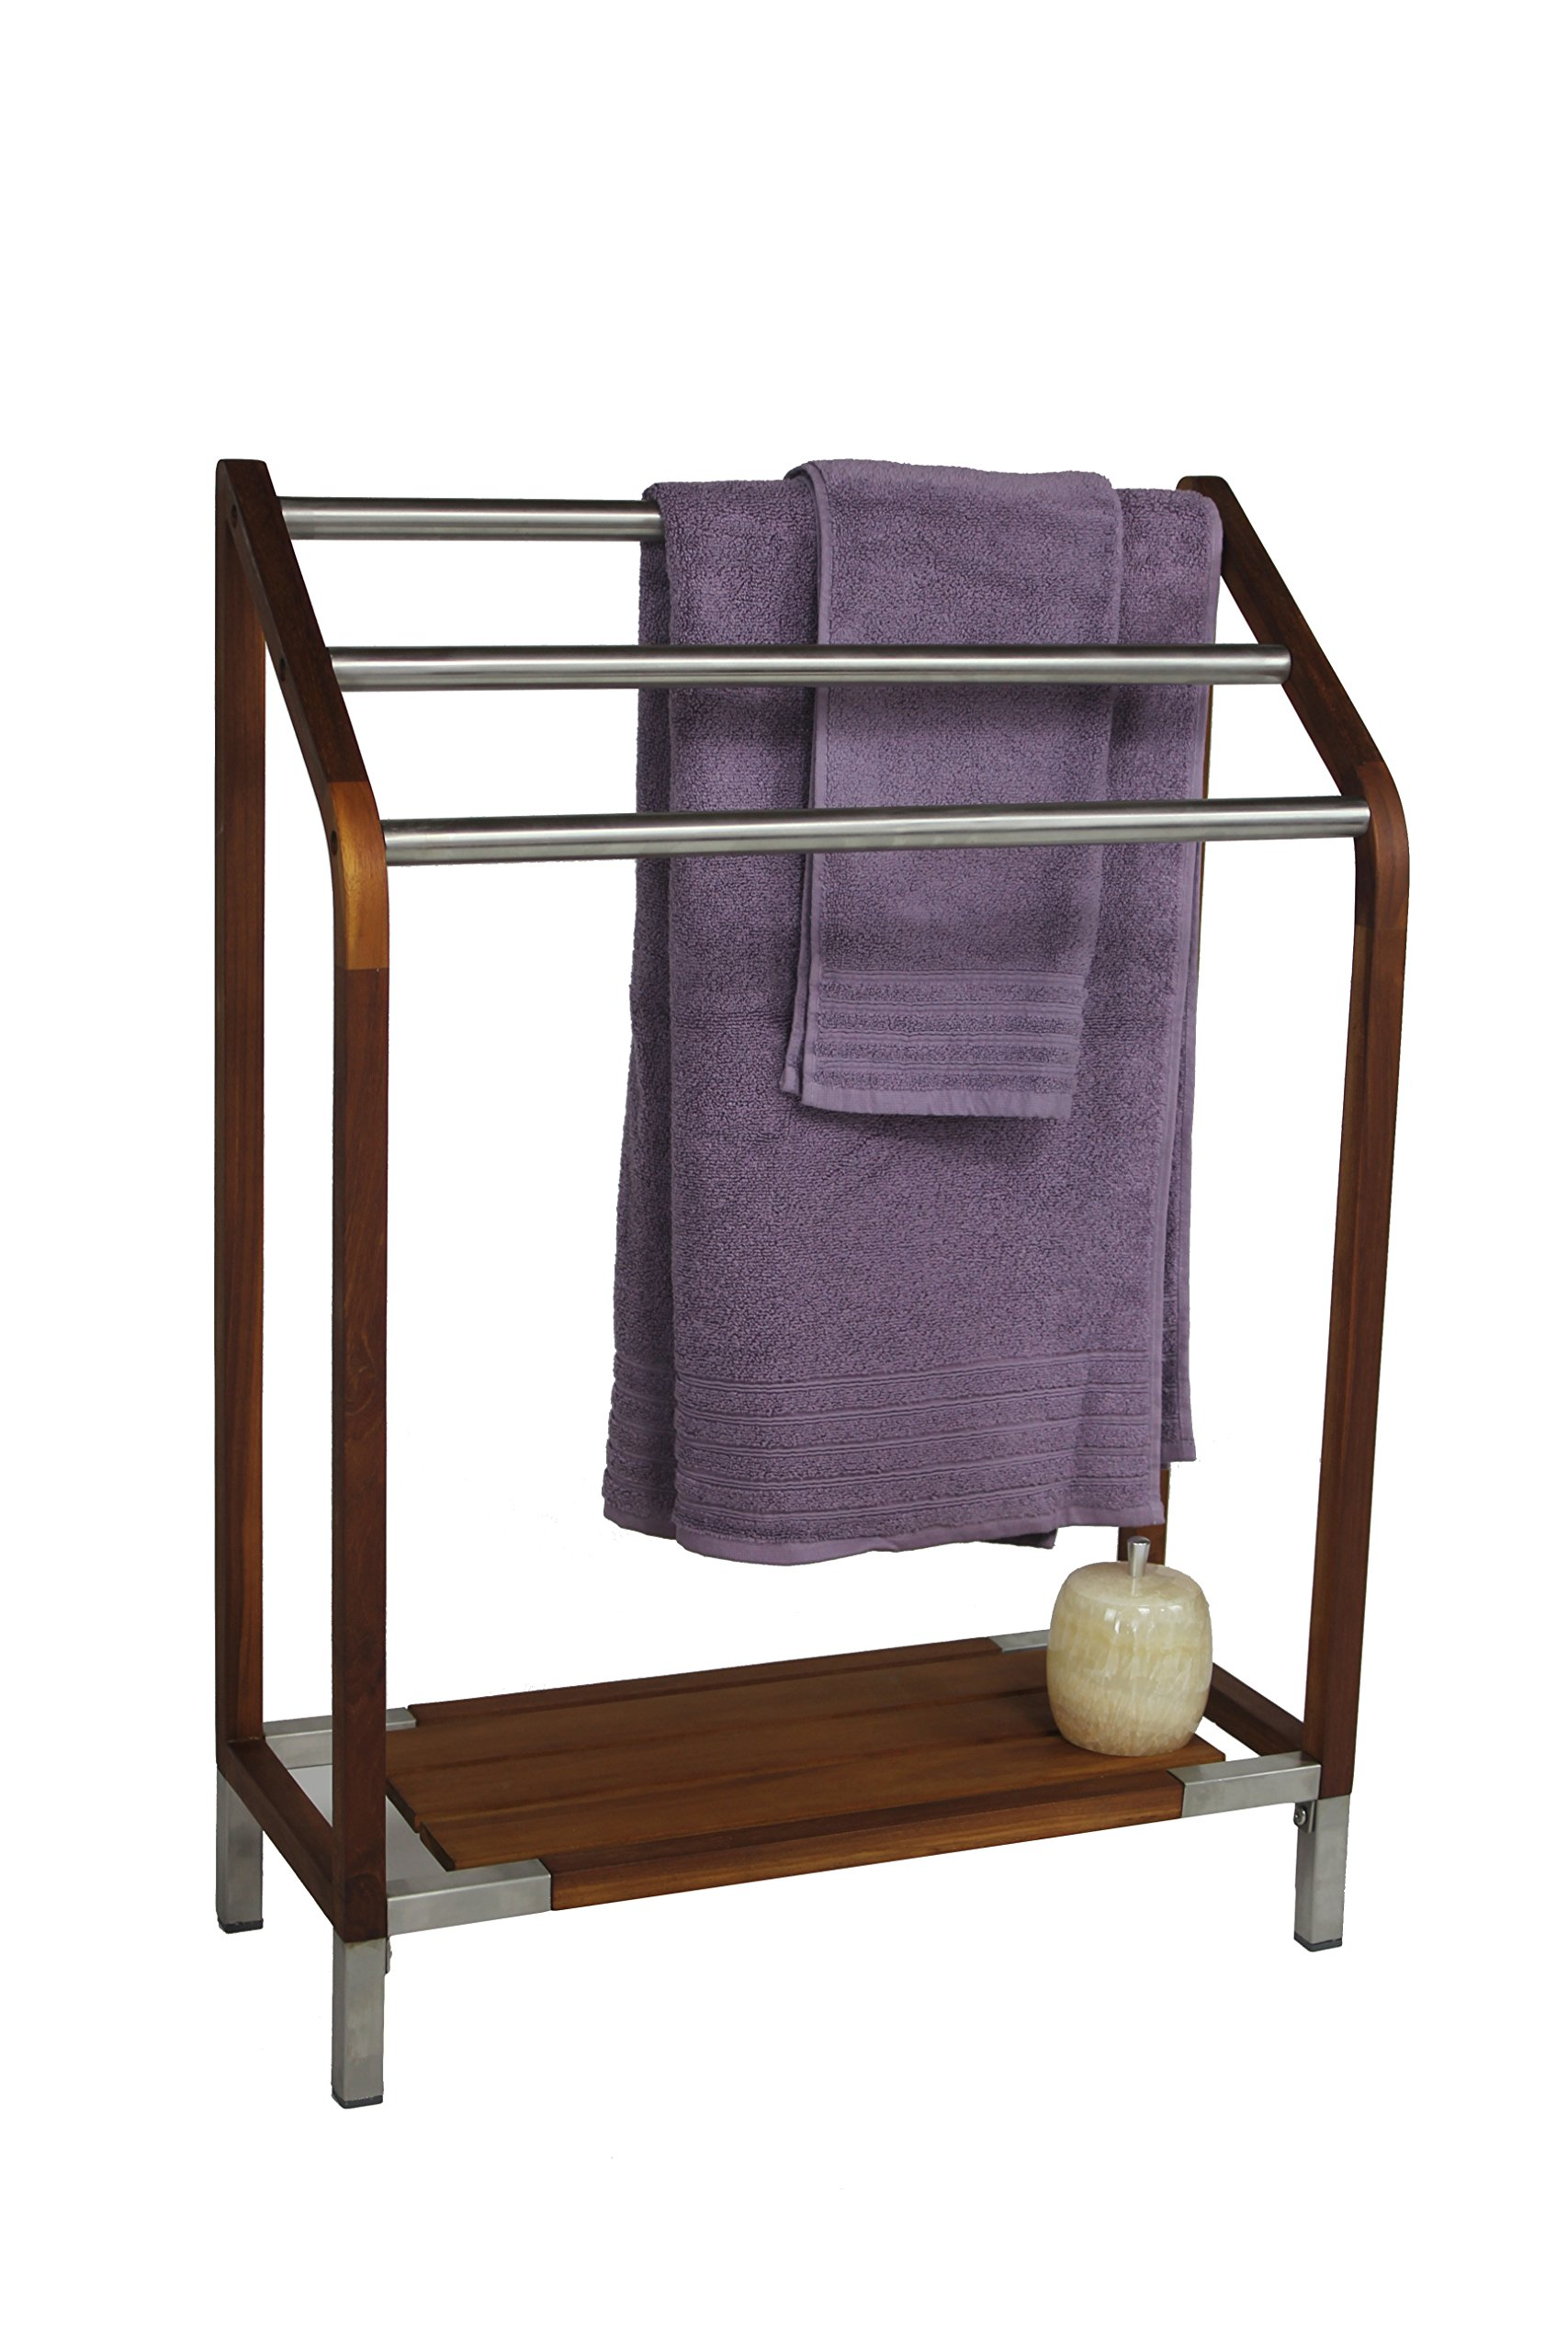 Sula Teak & Stainless Steel Towel Stand